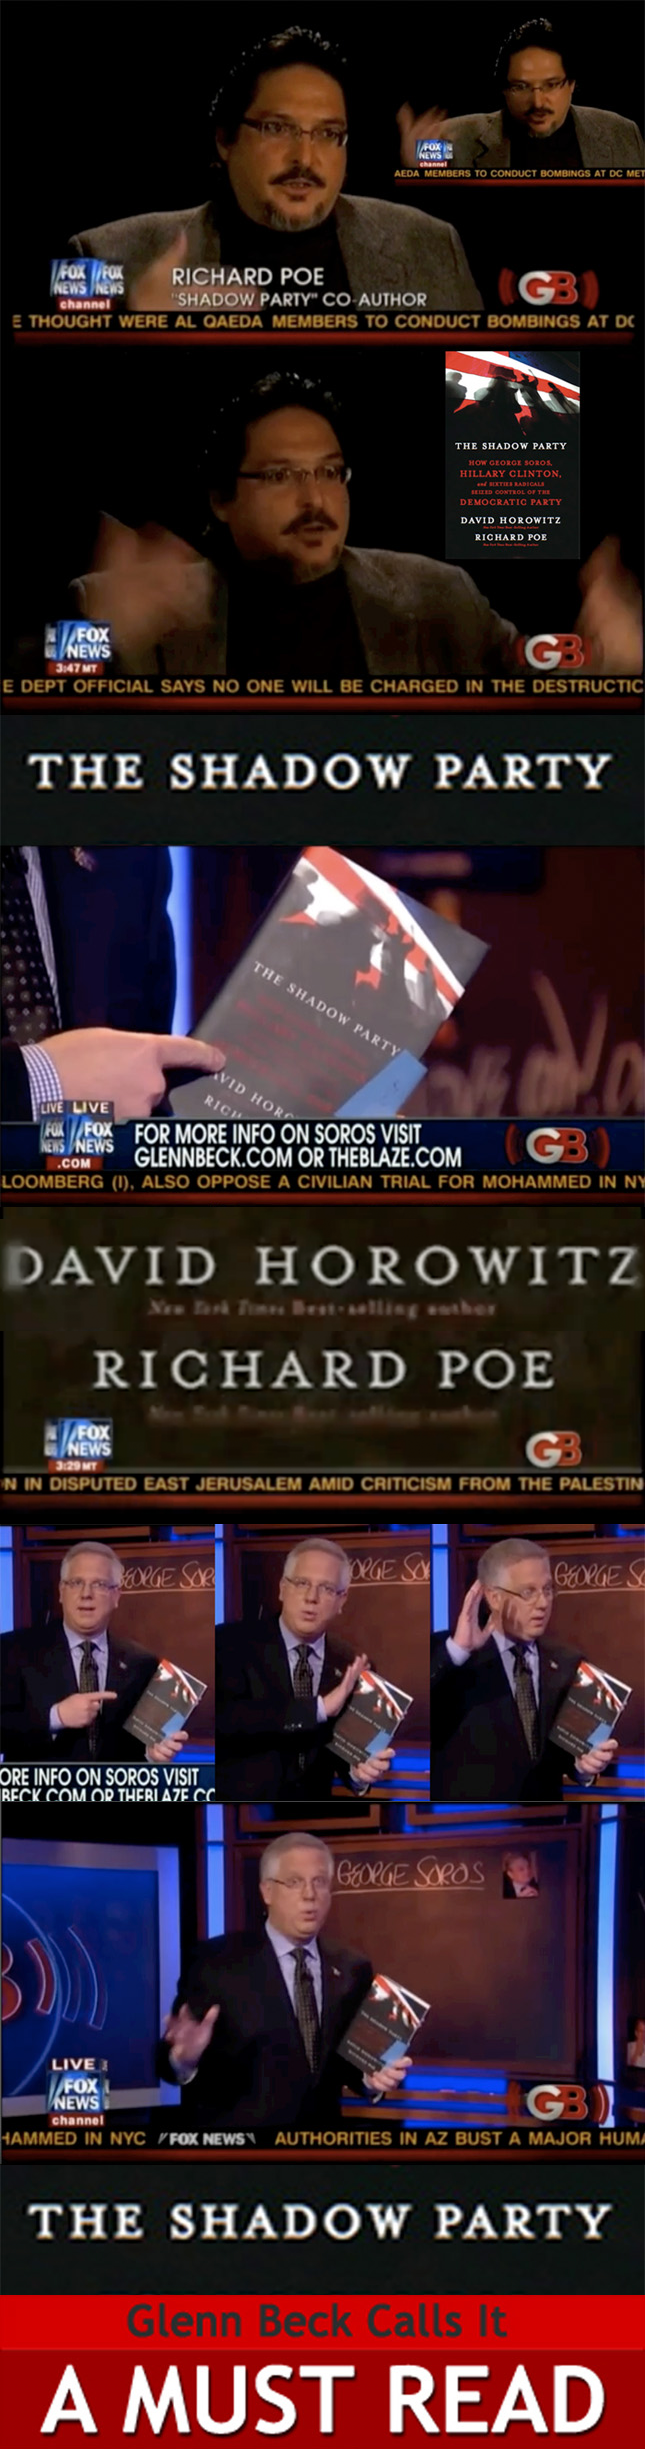 Montage of Shadow Party Co-Author Richard Poe on Glenn Beck Program, November 9, 2010